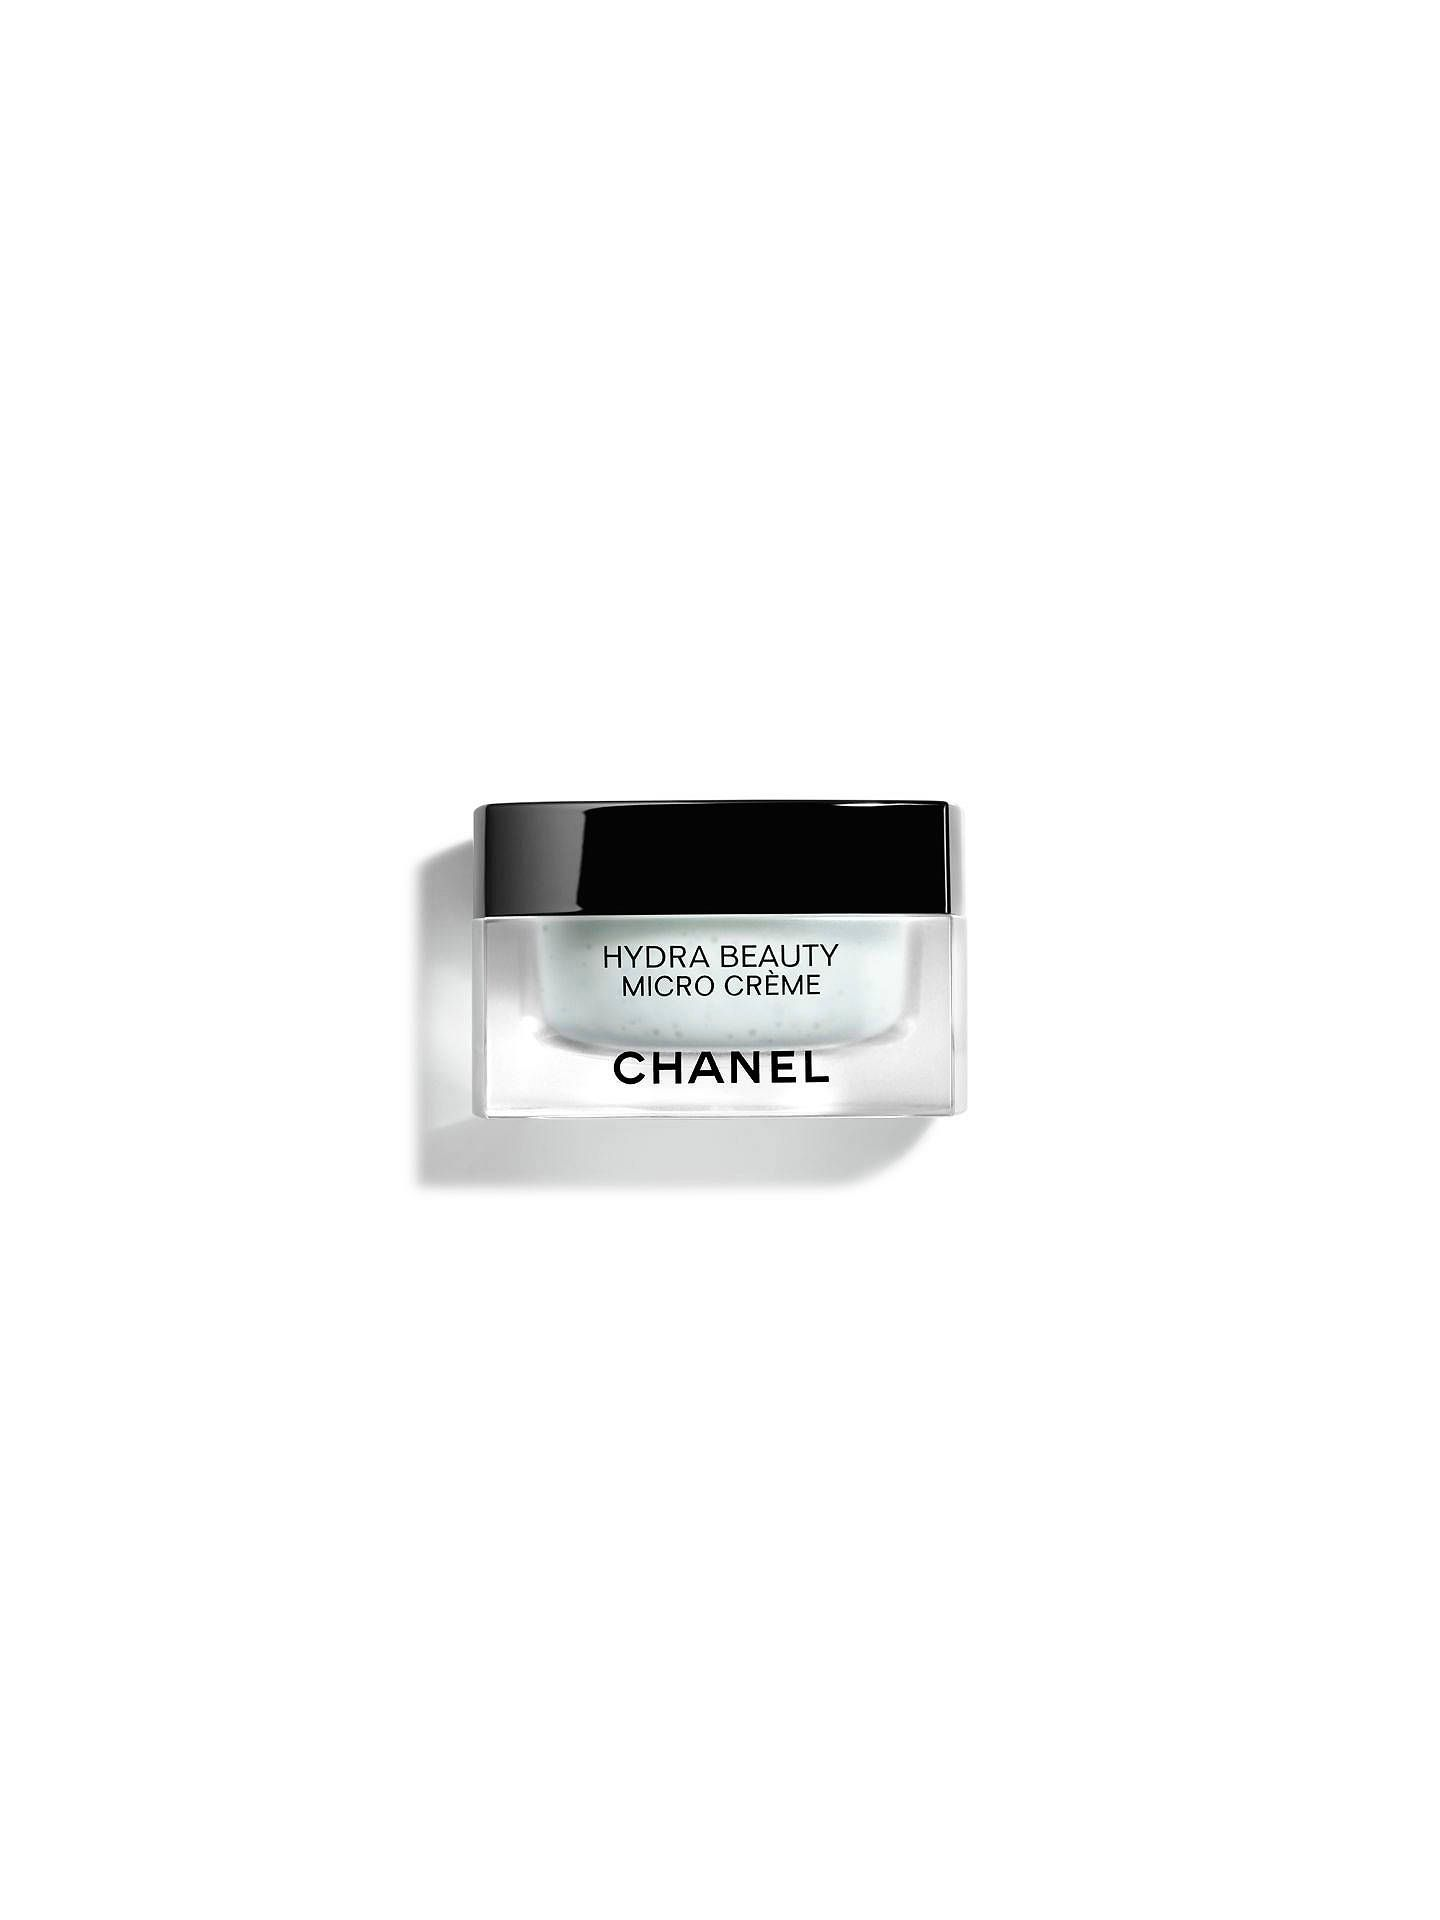 Chanel Hydra Beauty Micro Crème Fortifying Replenishing Hydration Chanel Hydra Beauty Restore Skin Hydra